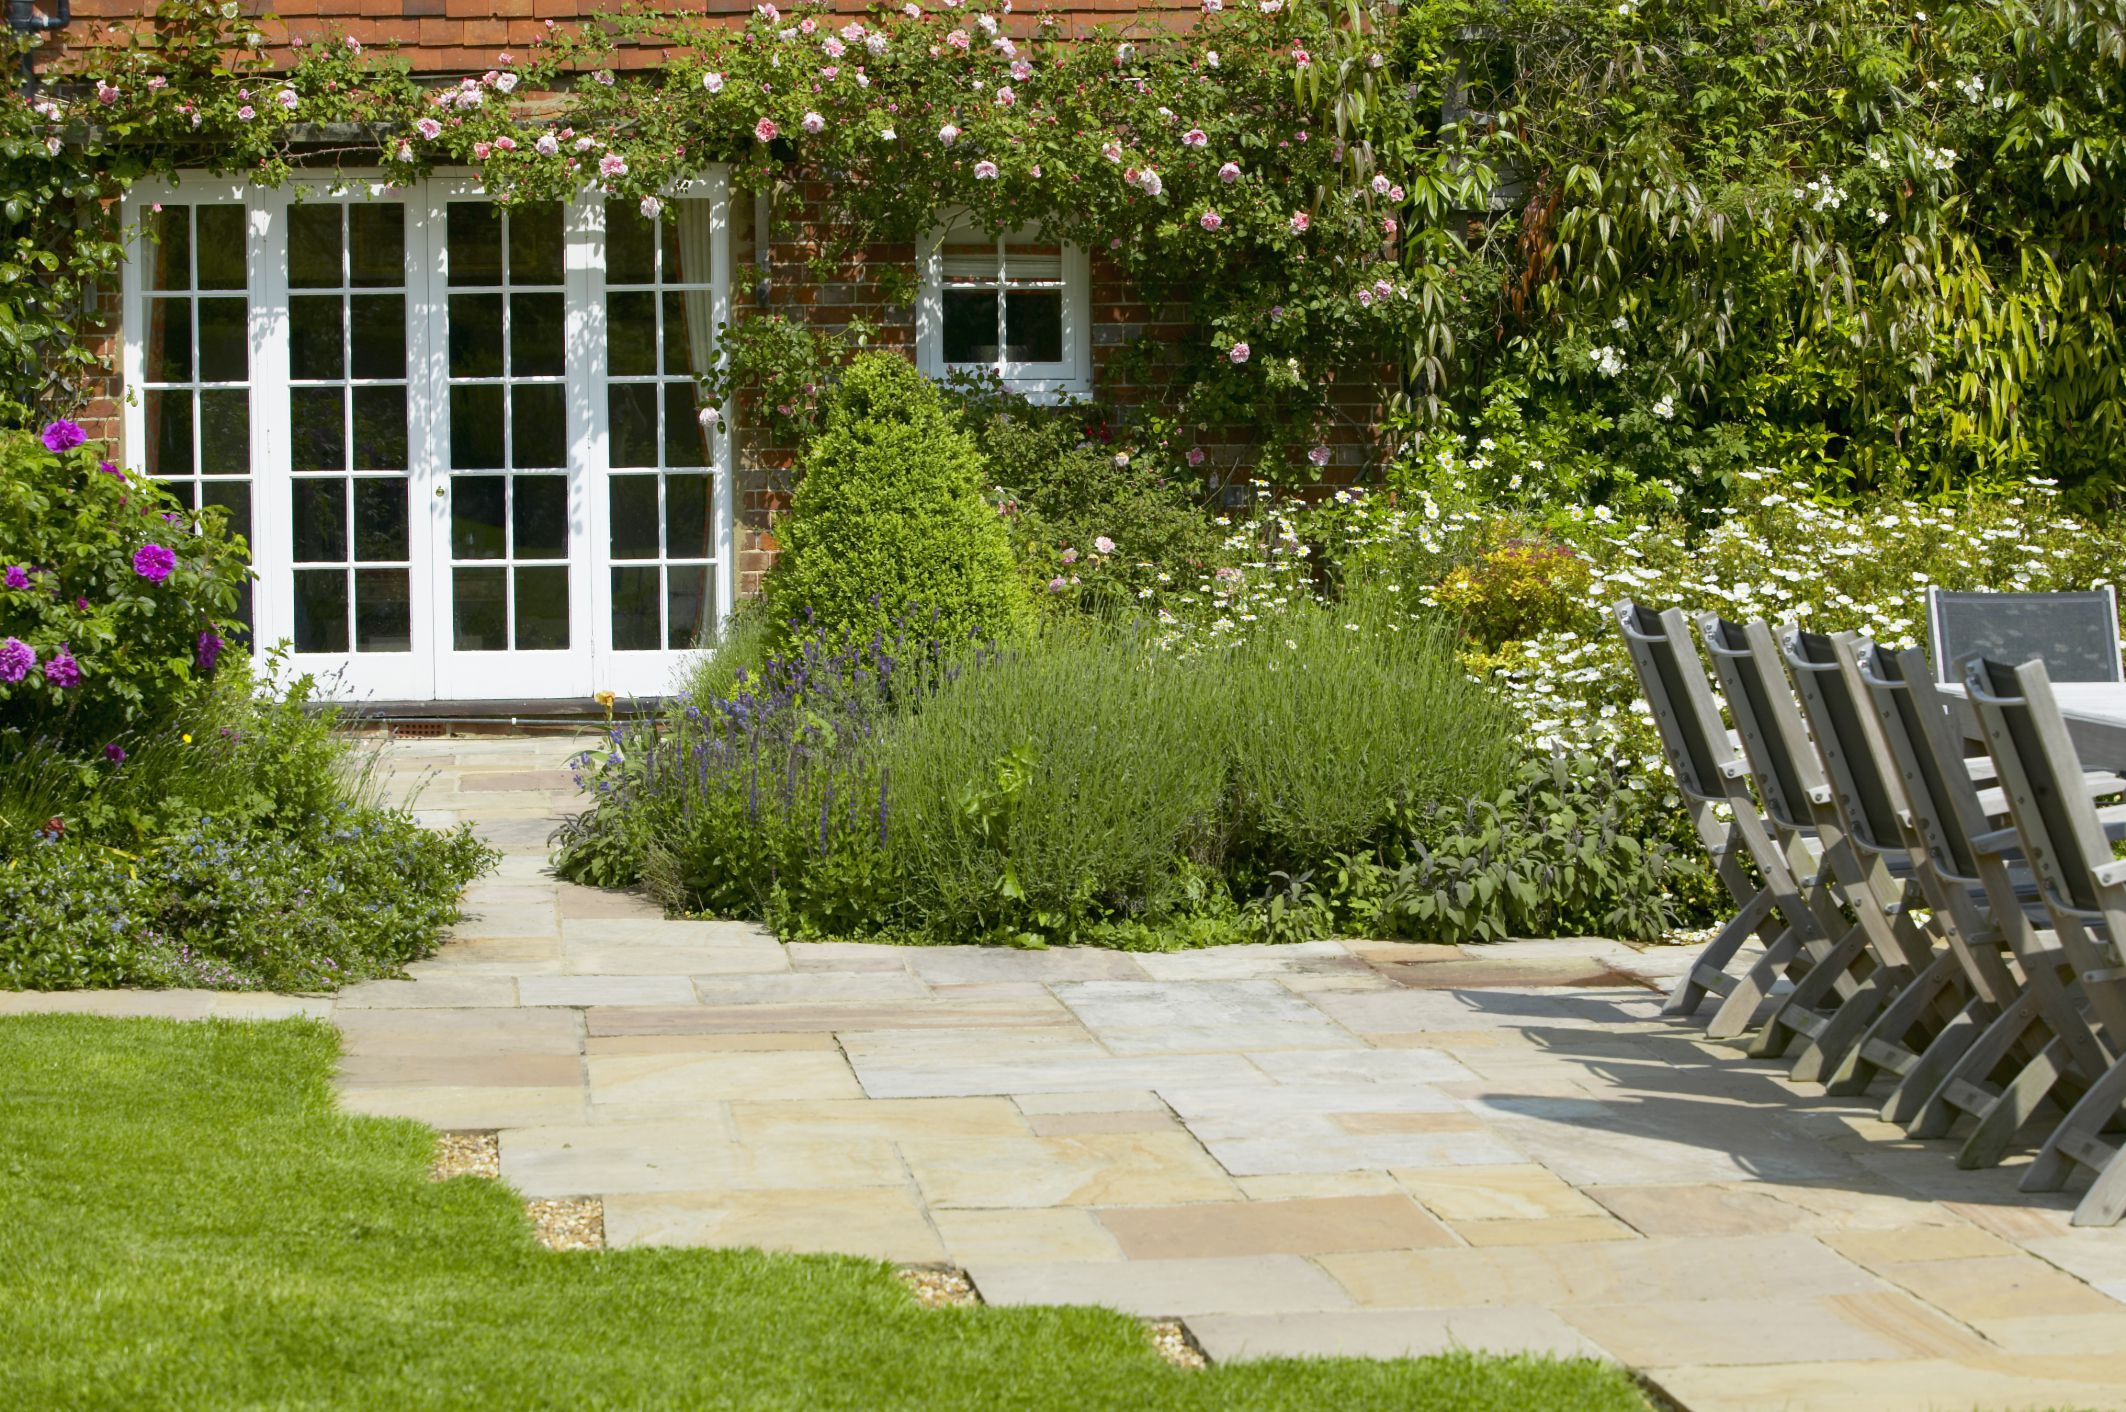 Easy Landscaping Ideas Low Maintenance Landscape Design Tips for 15 Some of the Coolest Concepts of How to Improve Backyard Landscapers